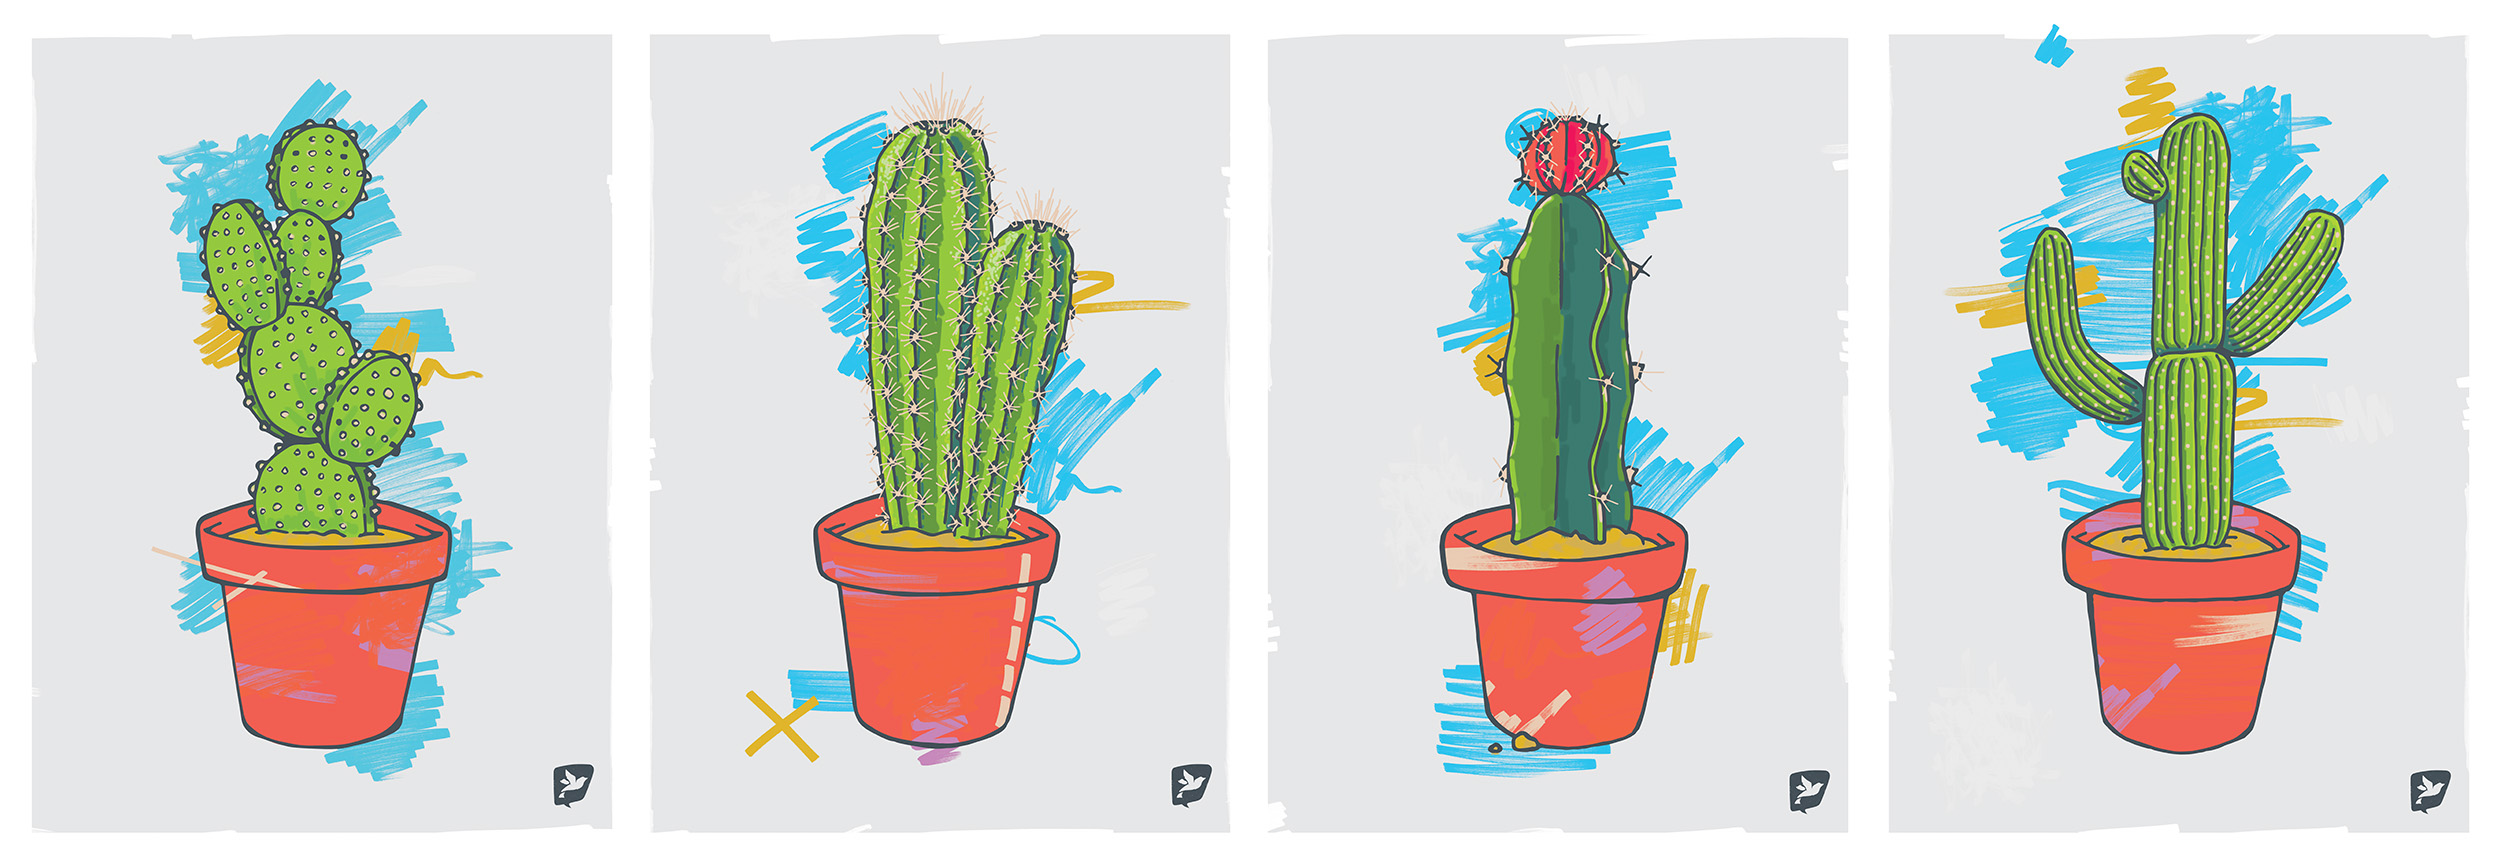 Cactus_Long_Template.jpg